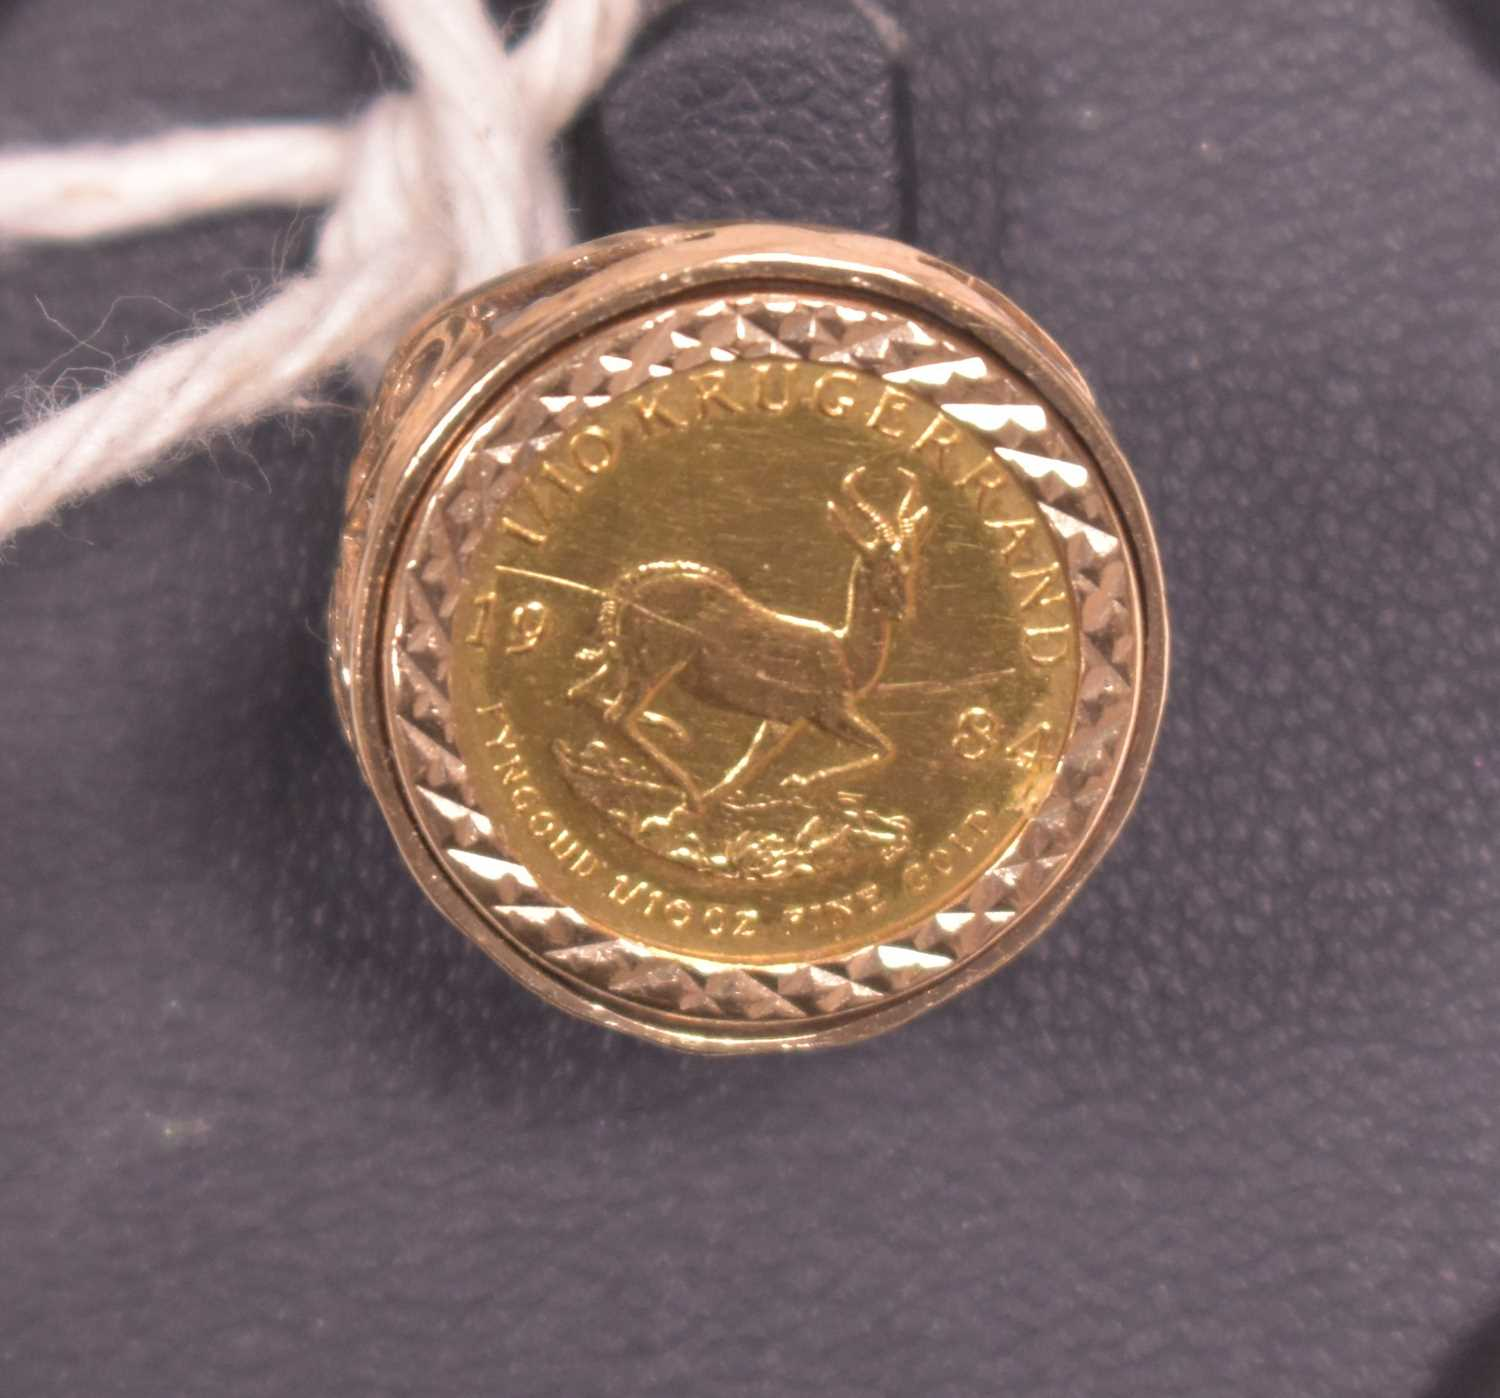 Lot 10-1/10 Krugerrand coin ring